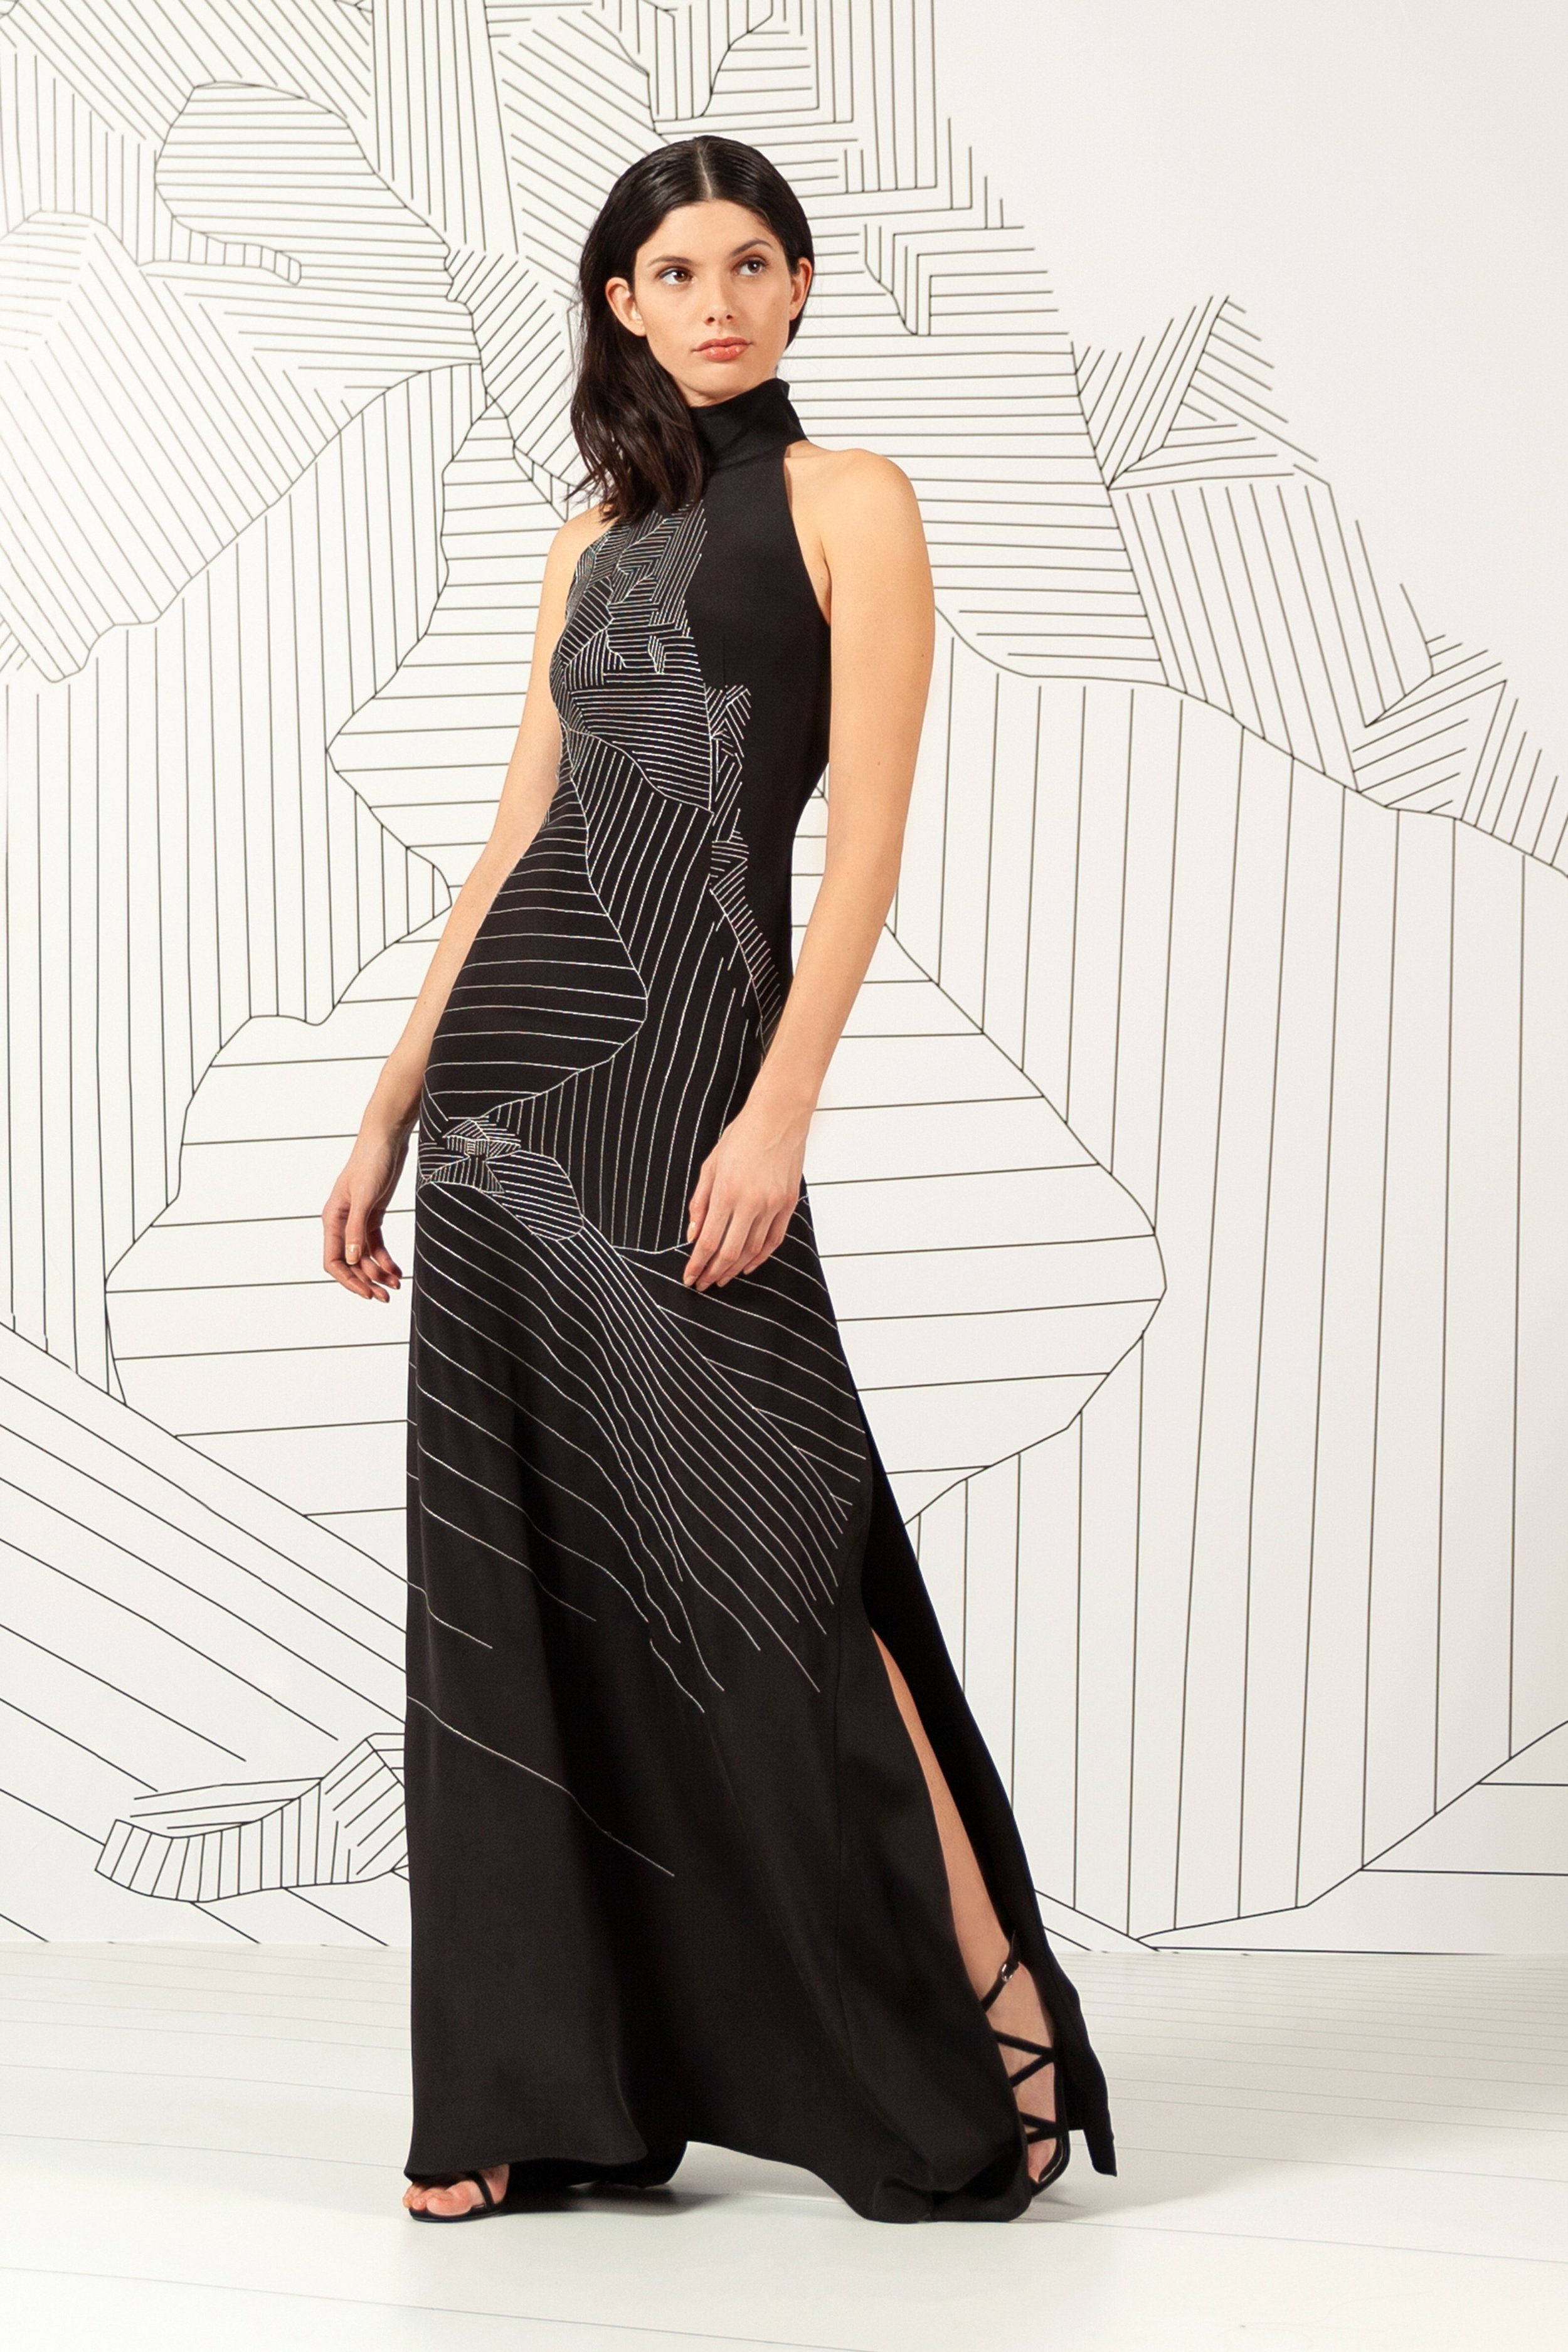 00018-akris-new-york-pre-fall-19.jpg